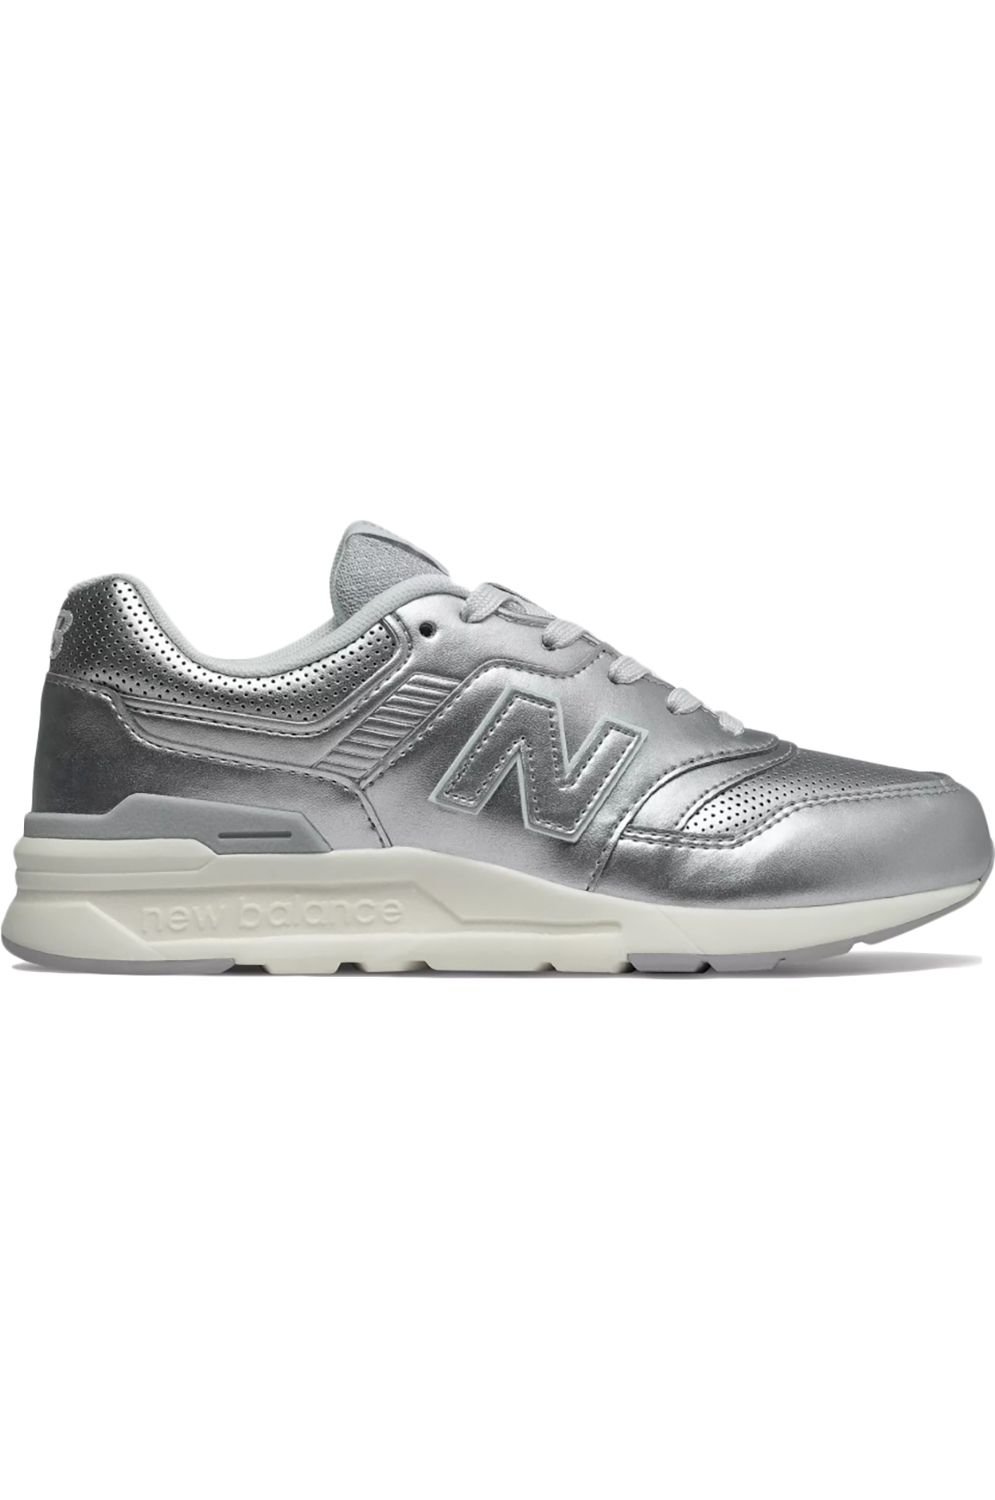 New Balance Shoes GR997 Silver